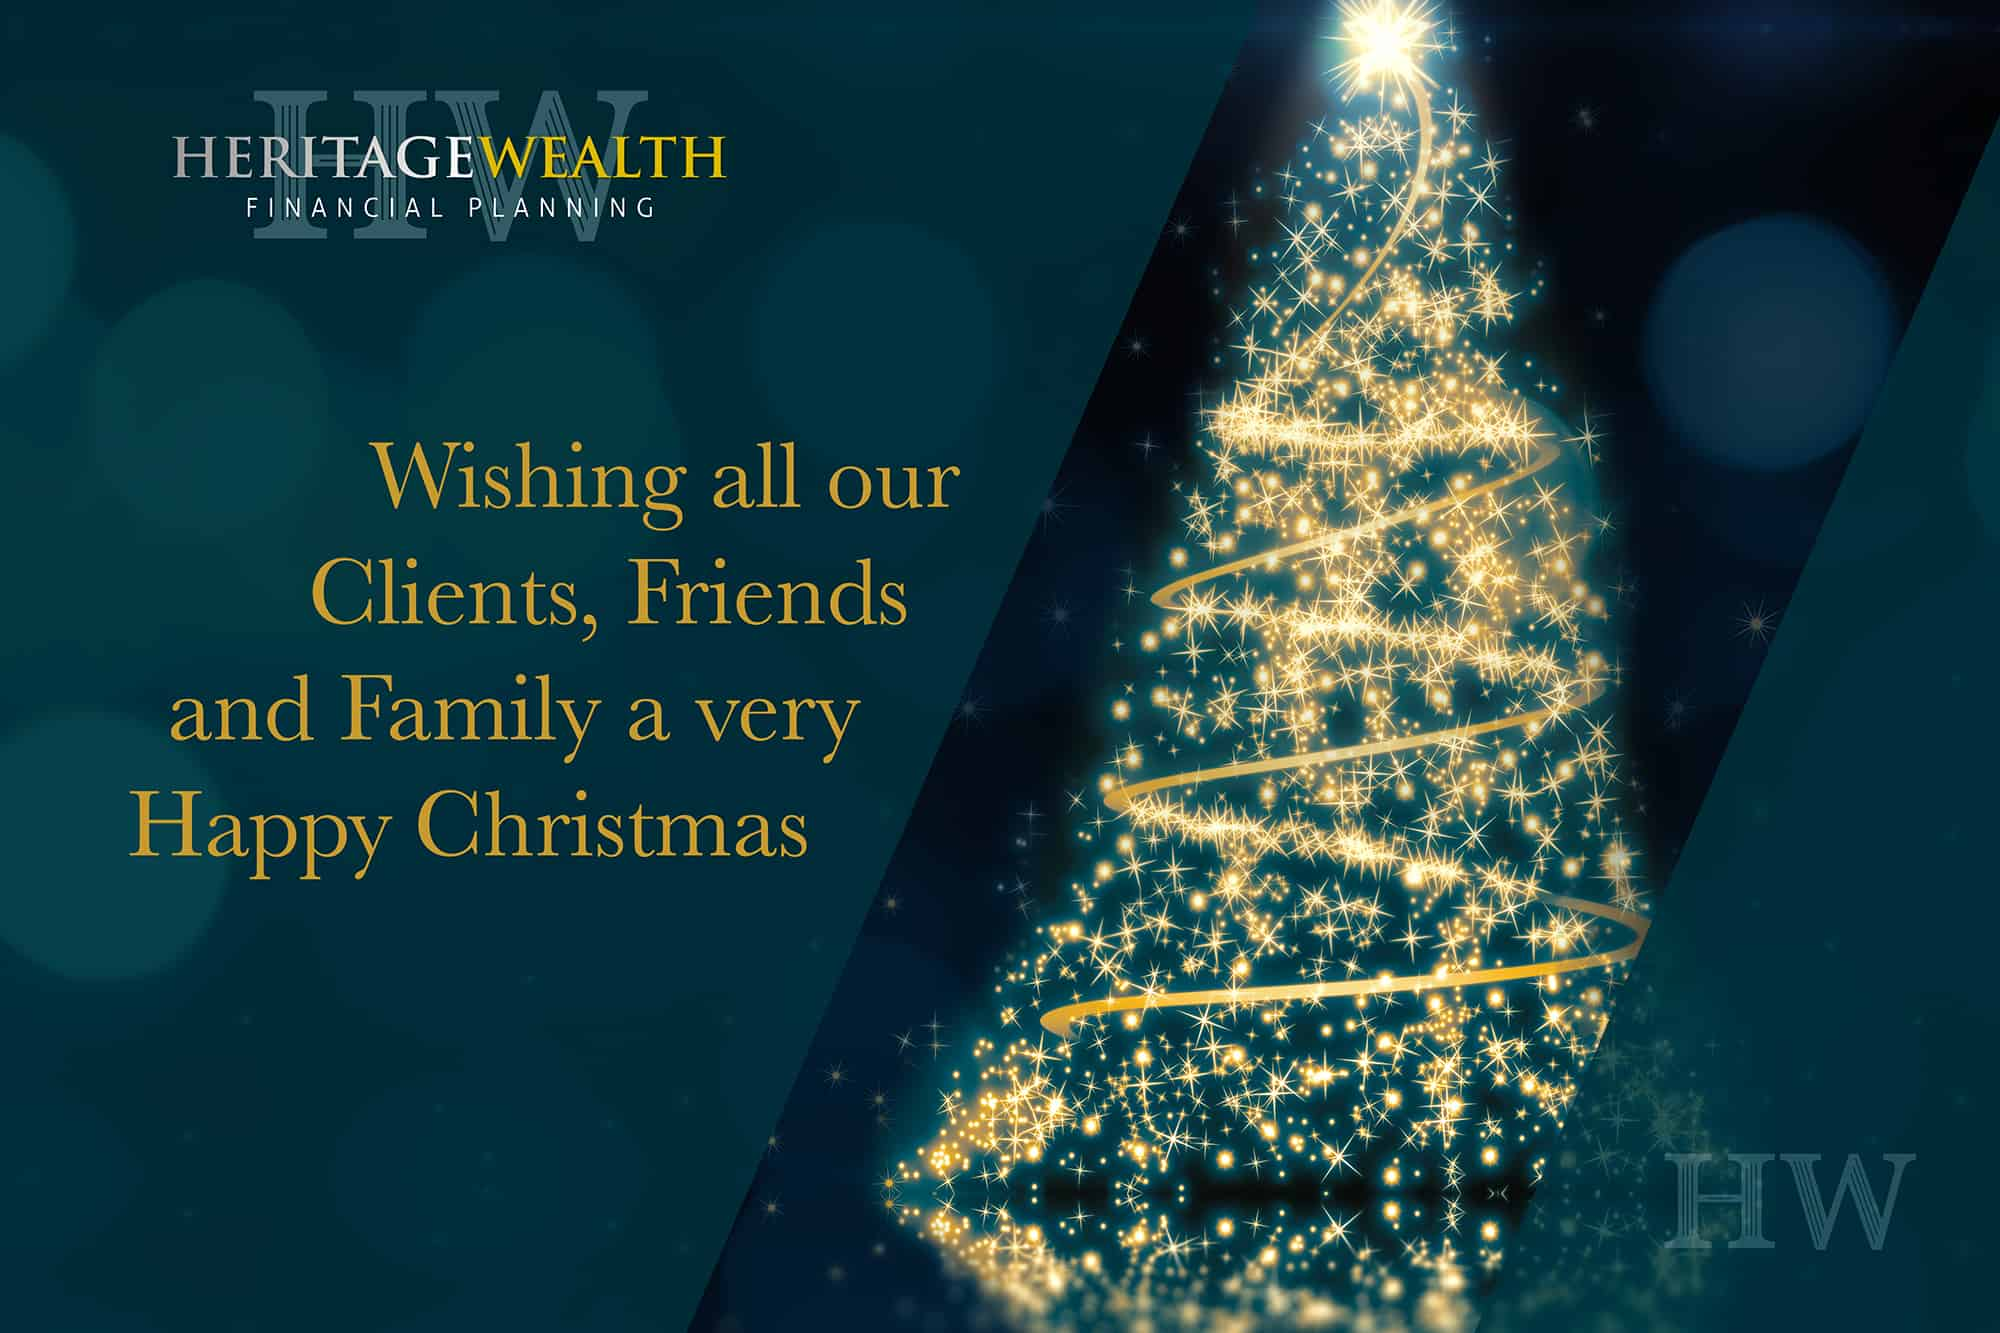 Wishing all out Clients, Friends and Family a very Happy Christmas